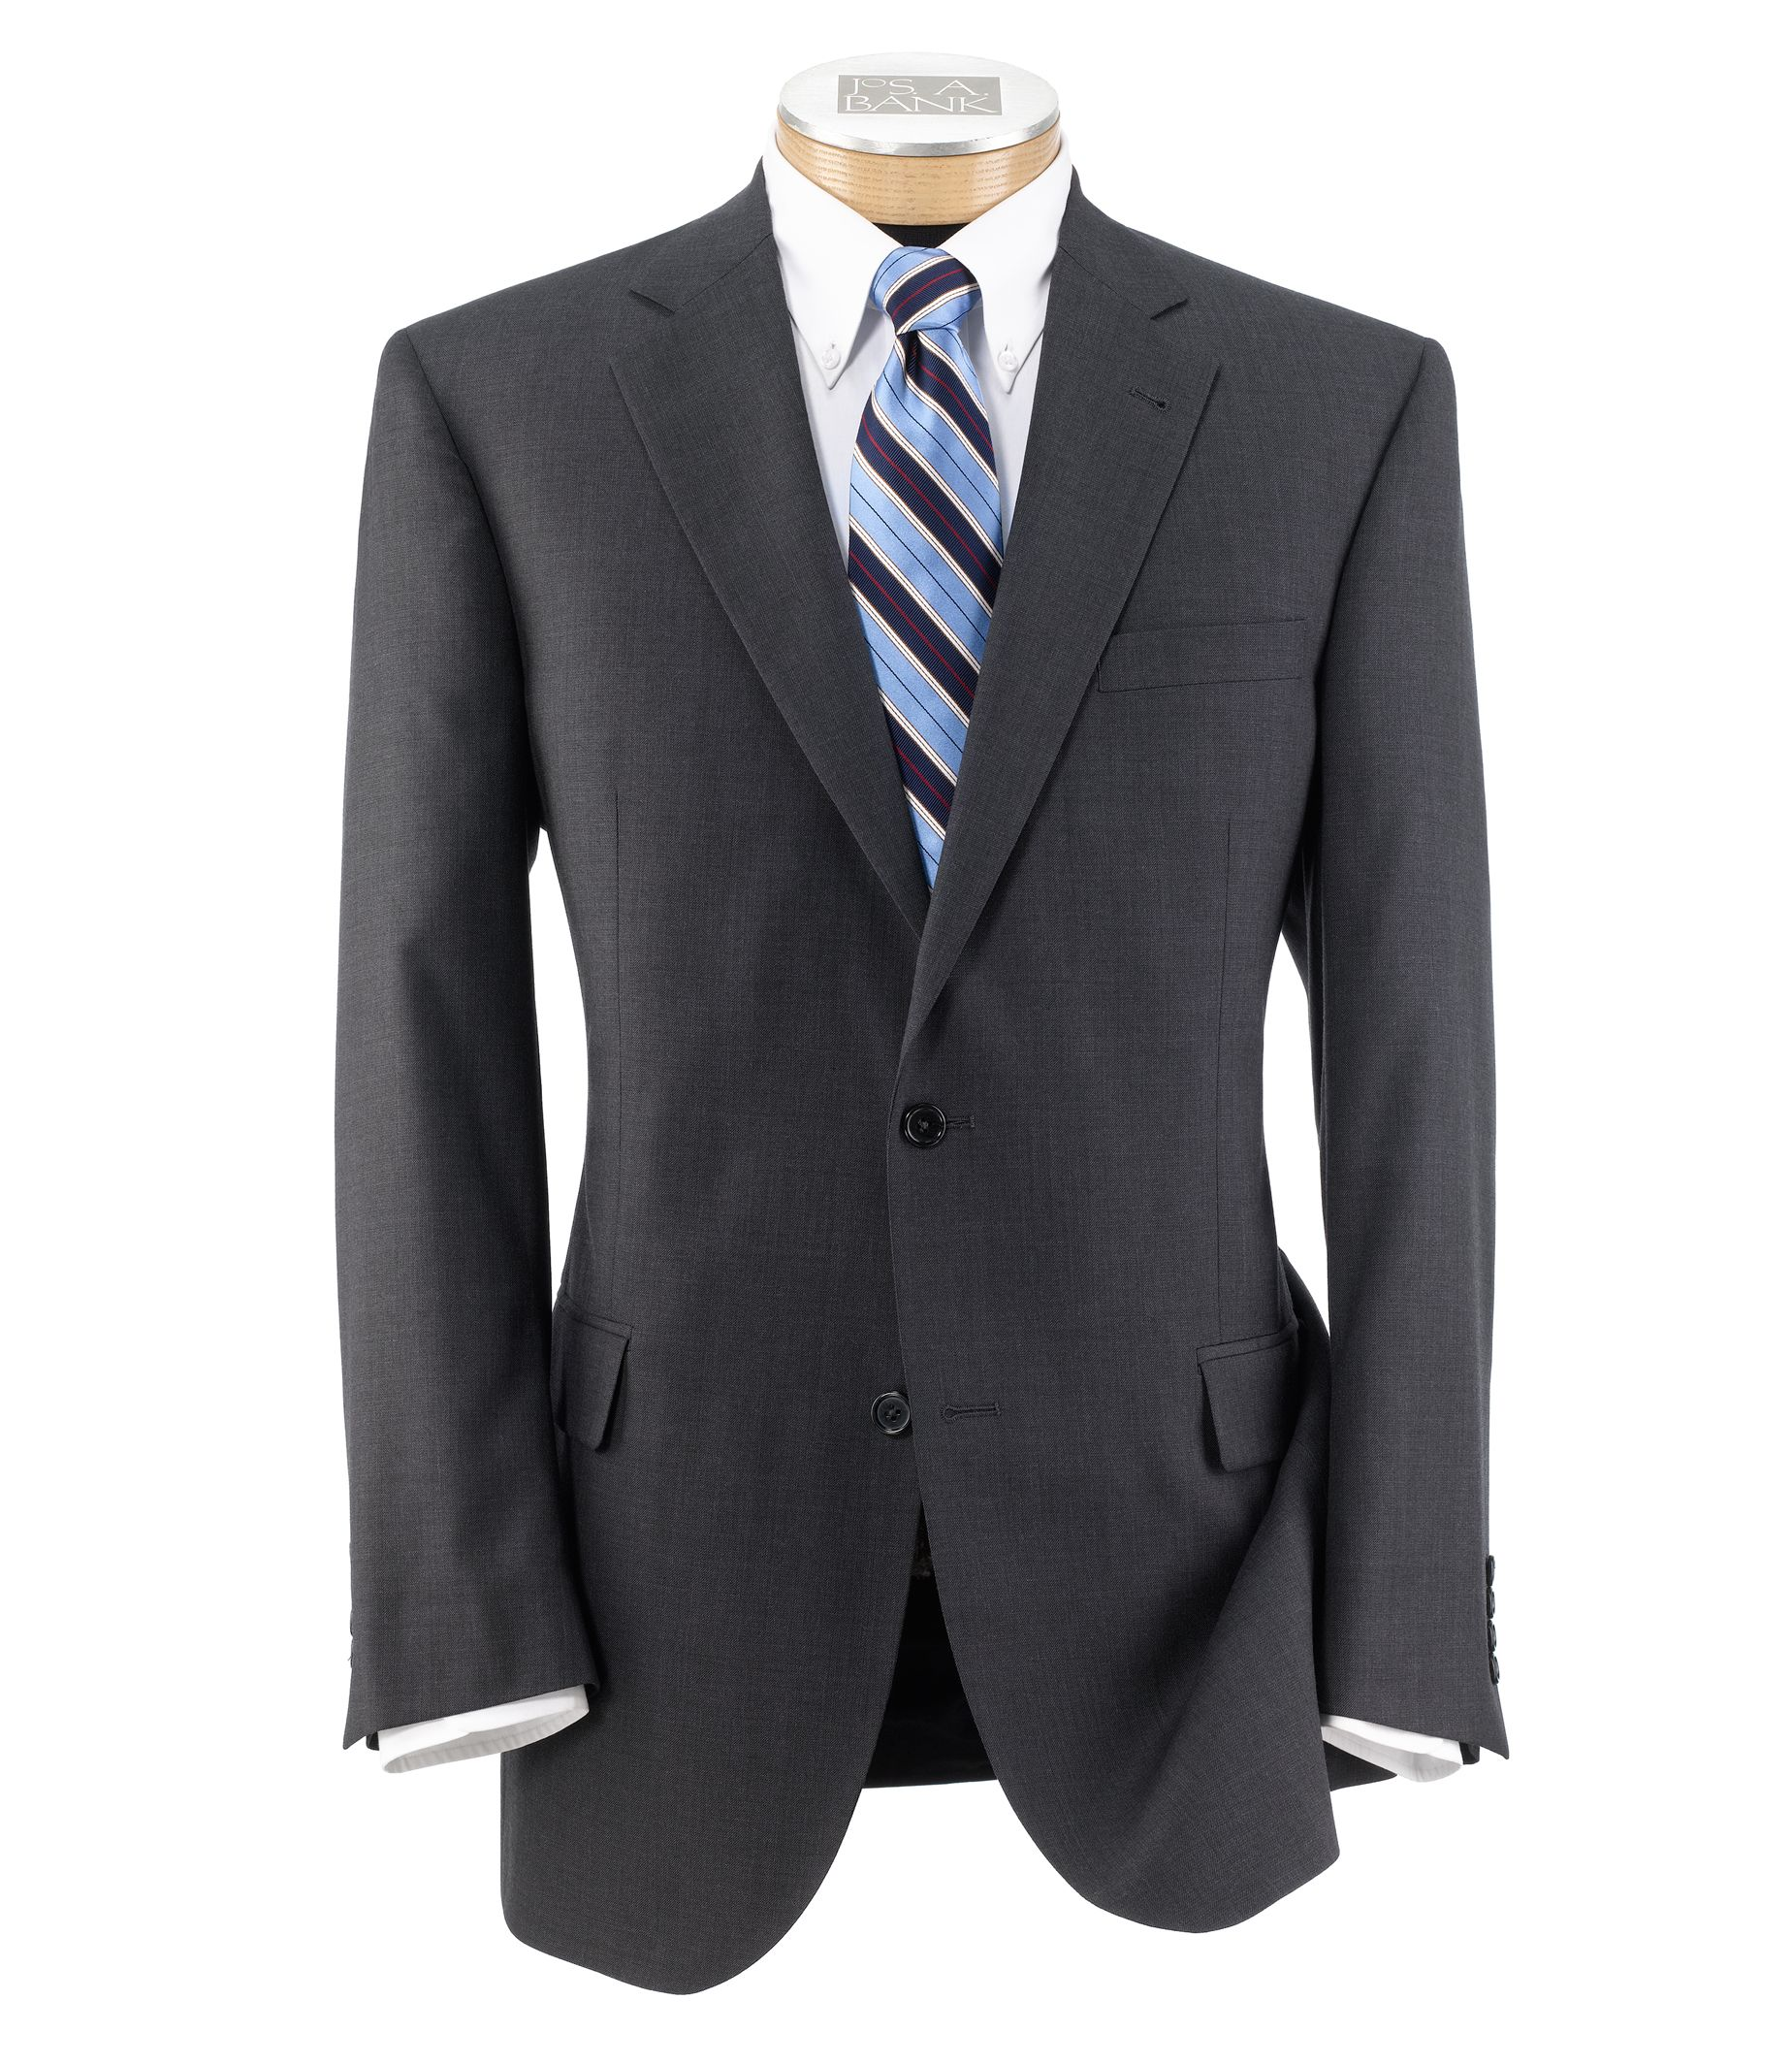 Signature Imperial Wool/Silk Suit with Pleated Trousers Extended Sizes- Grey